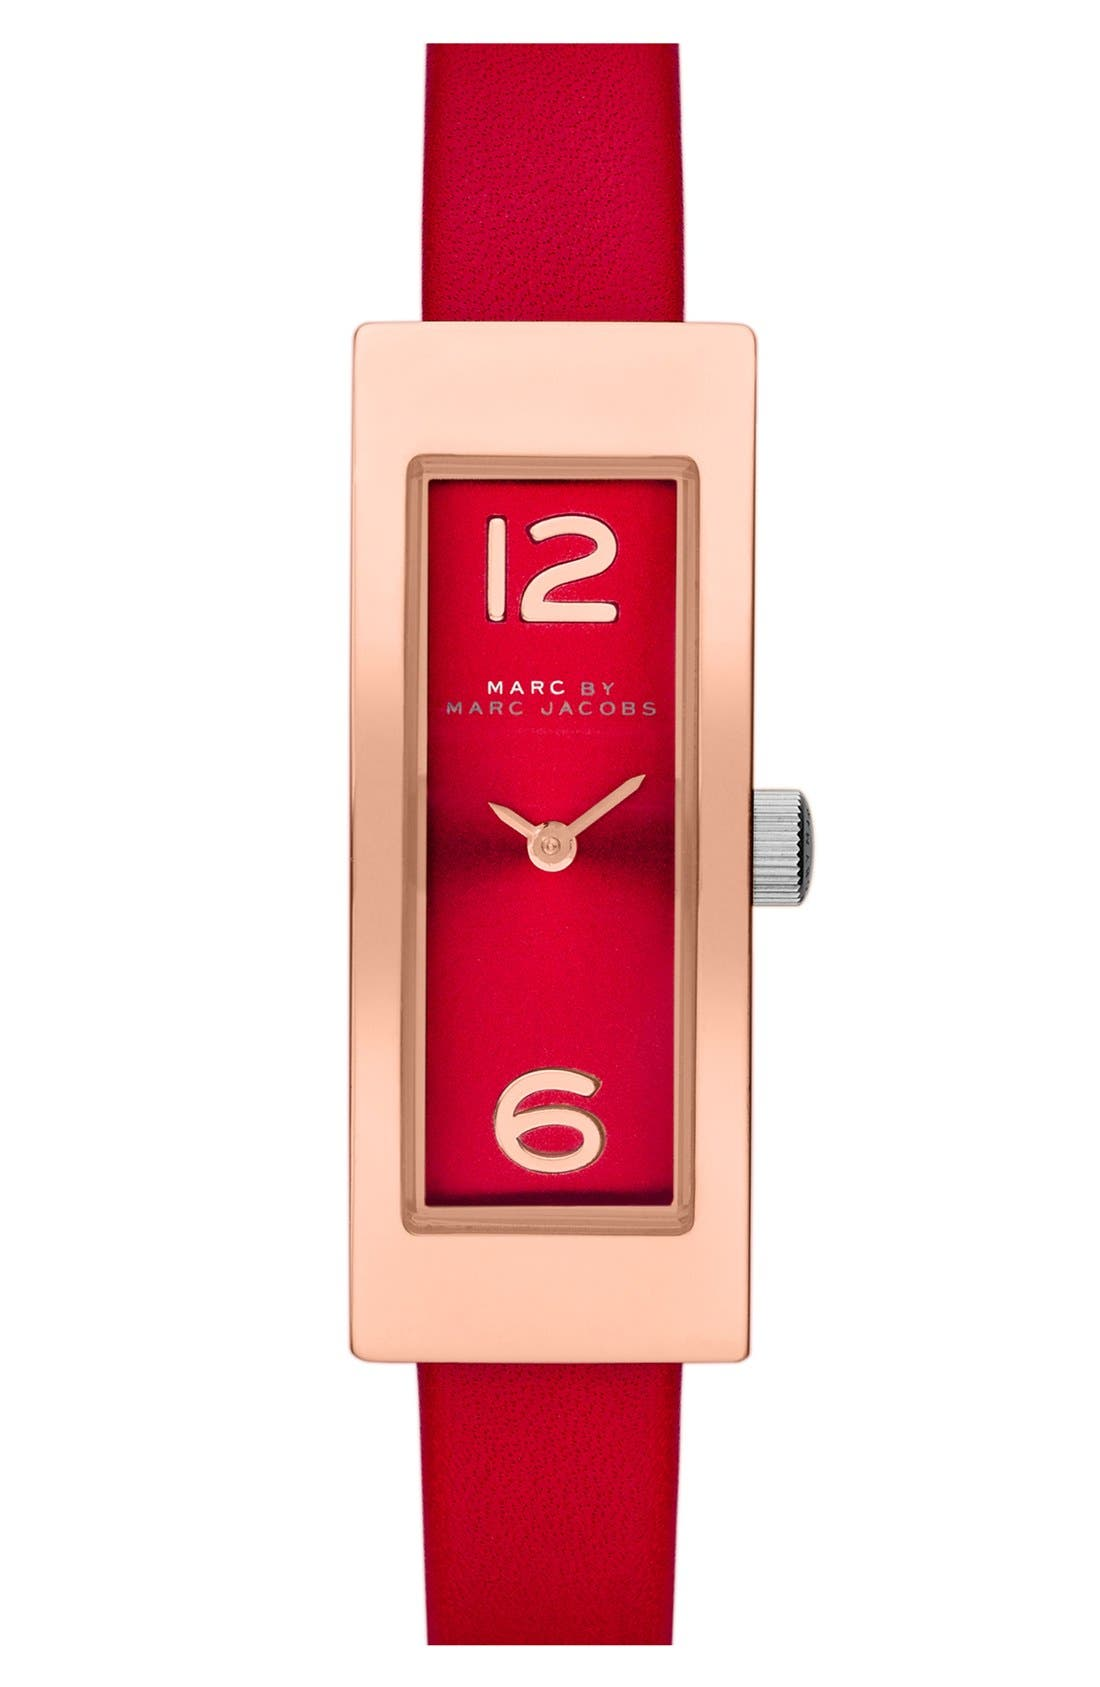 Alternate Image 1 Selected - MARC JACOBS 'Logo Plaque' Leather Strap Watch, 16mm x 42mm